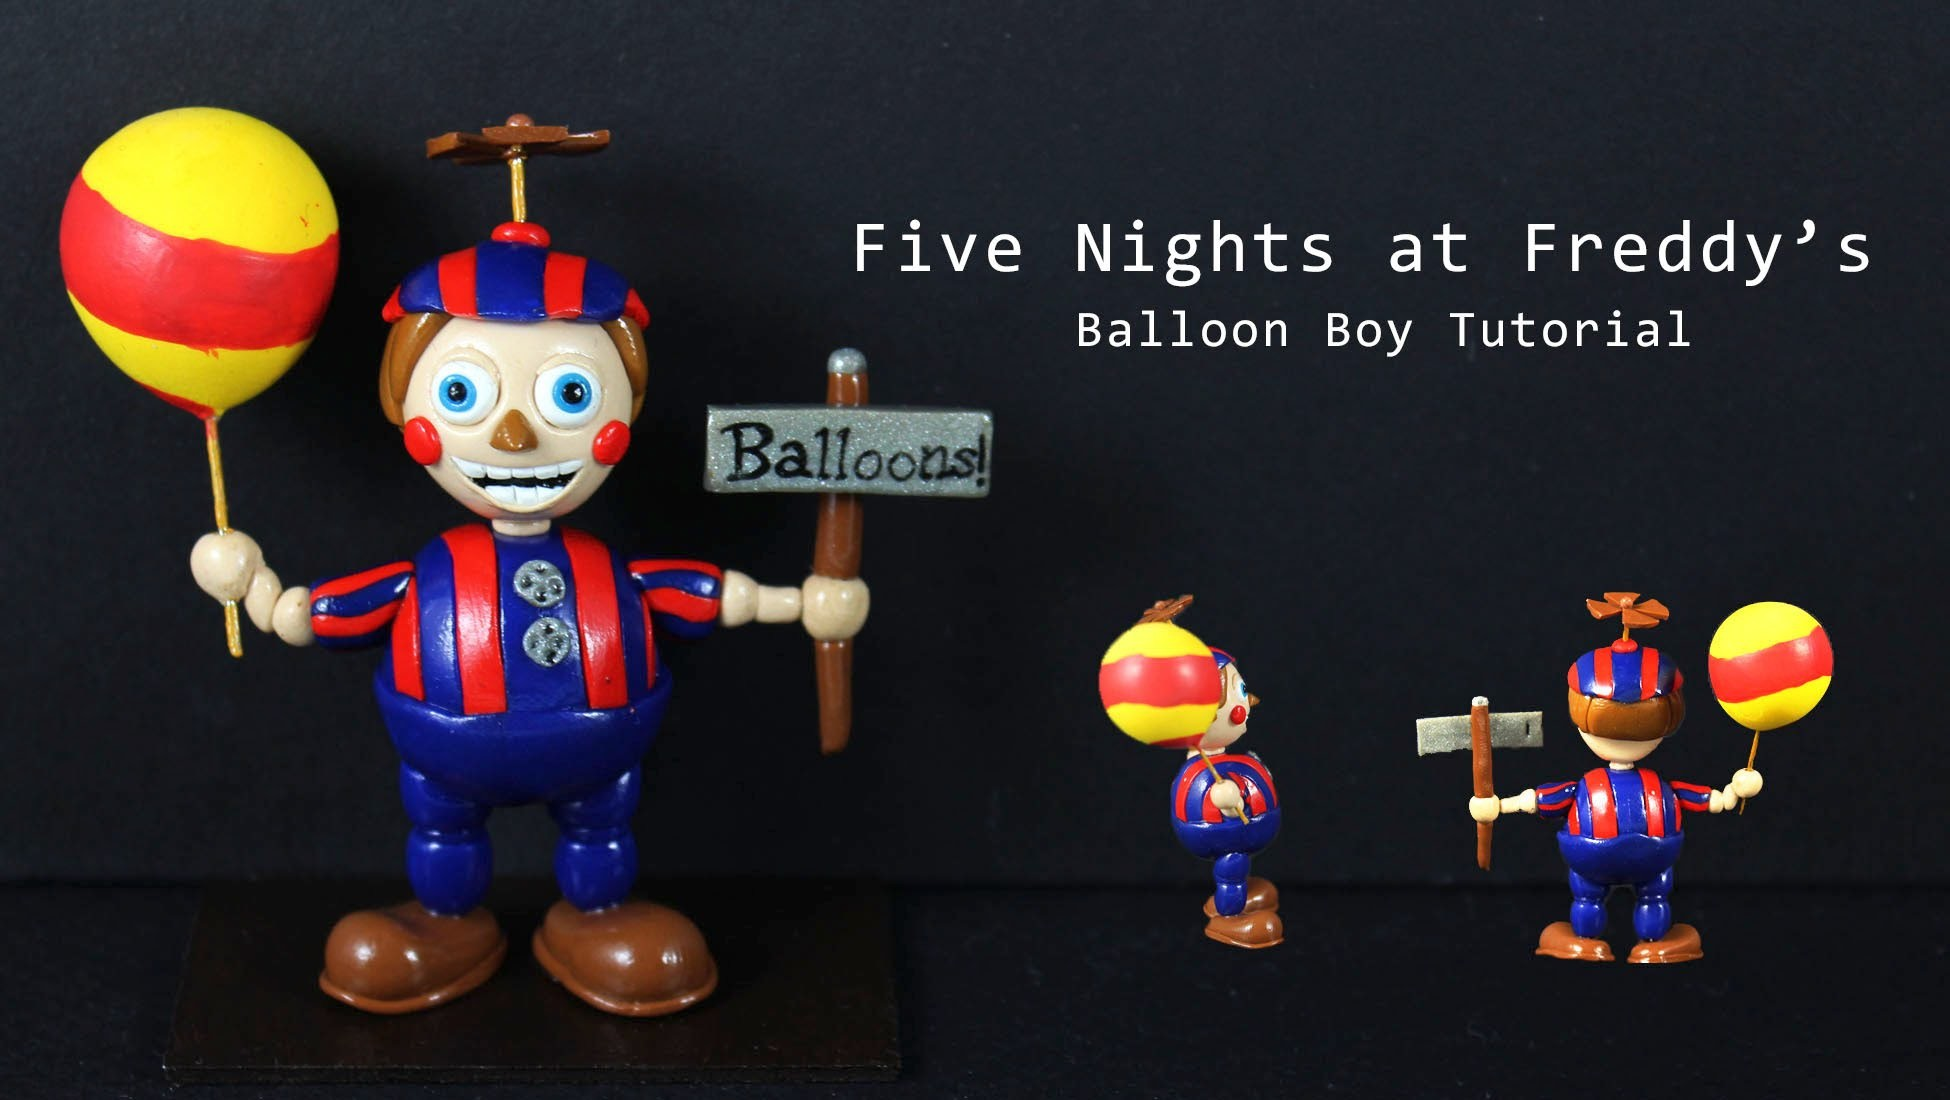 Five Nights at Freddy's 2 Balloon Boy Polymer Clay Tutorial